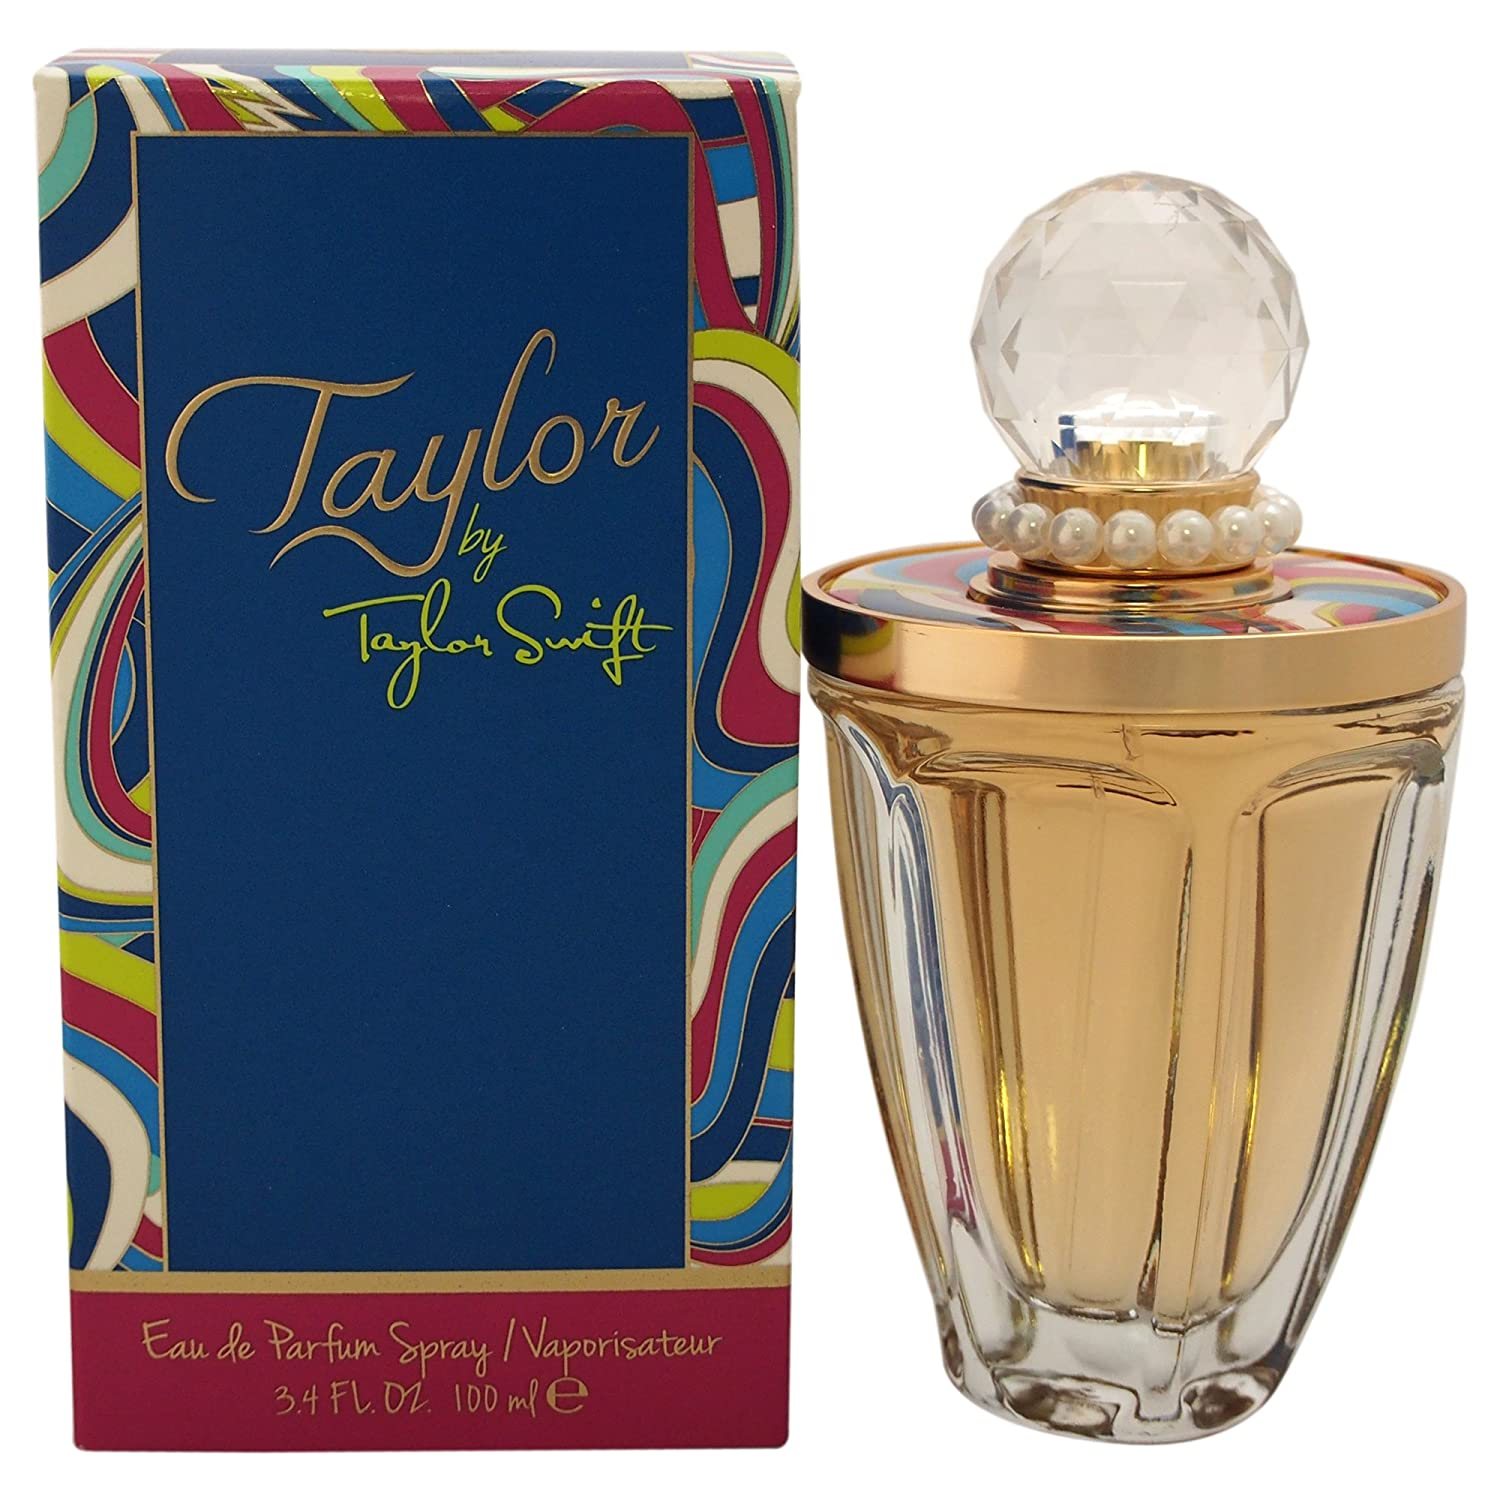 Top 12 Best Perfume For Teens (2020 Reviews & Buying Guide) 11